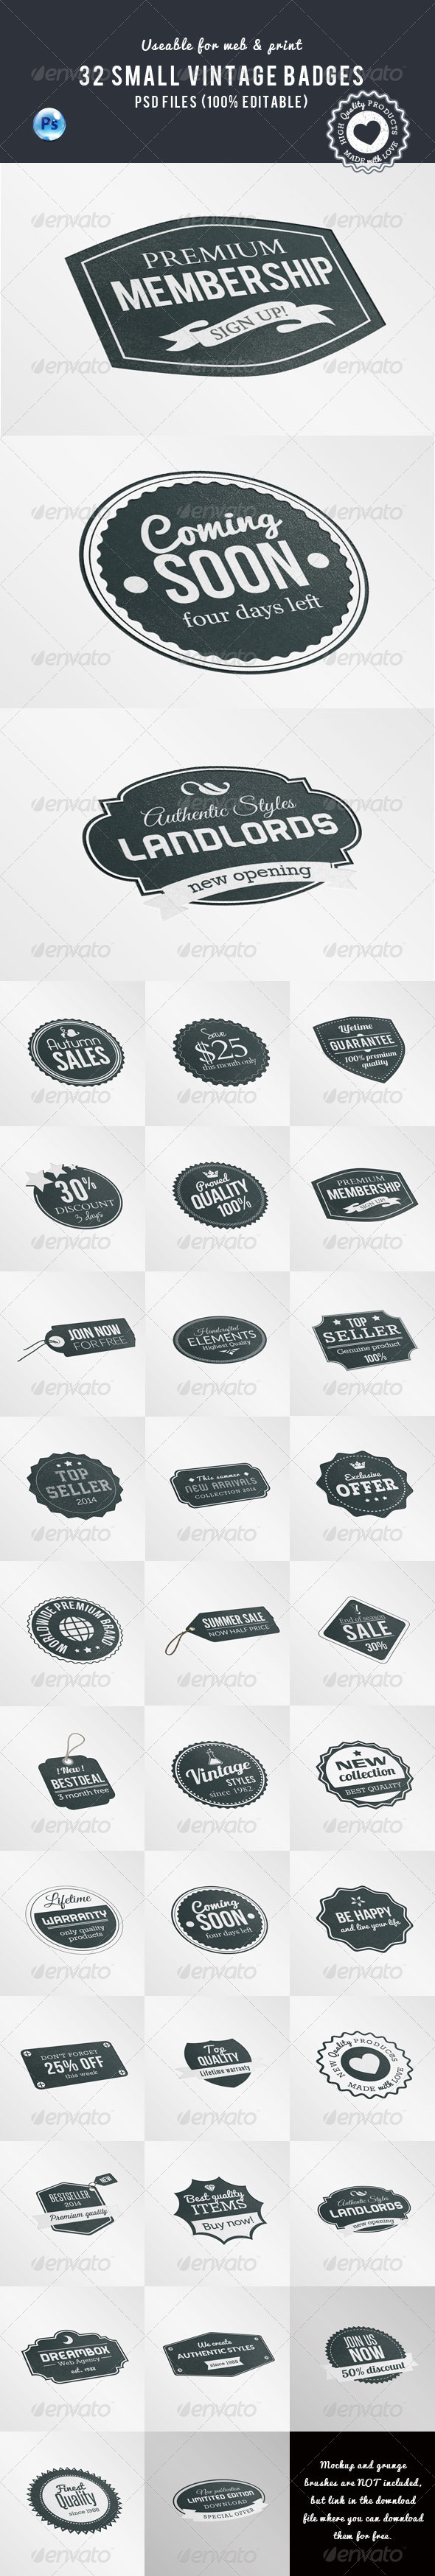 GraphicRiver 32 Small Vintage Badges 7700223